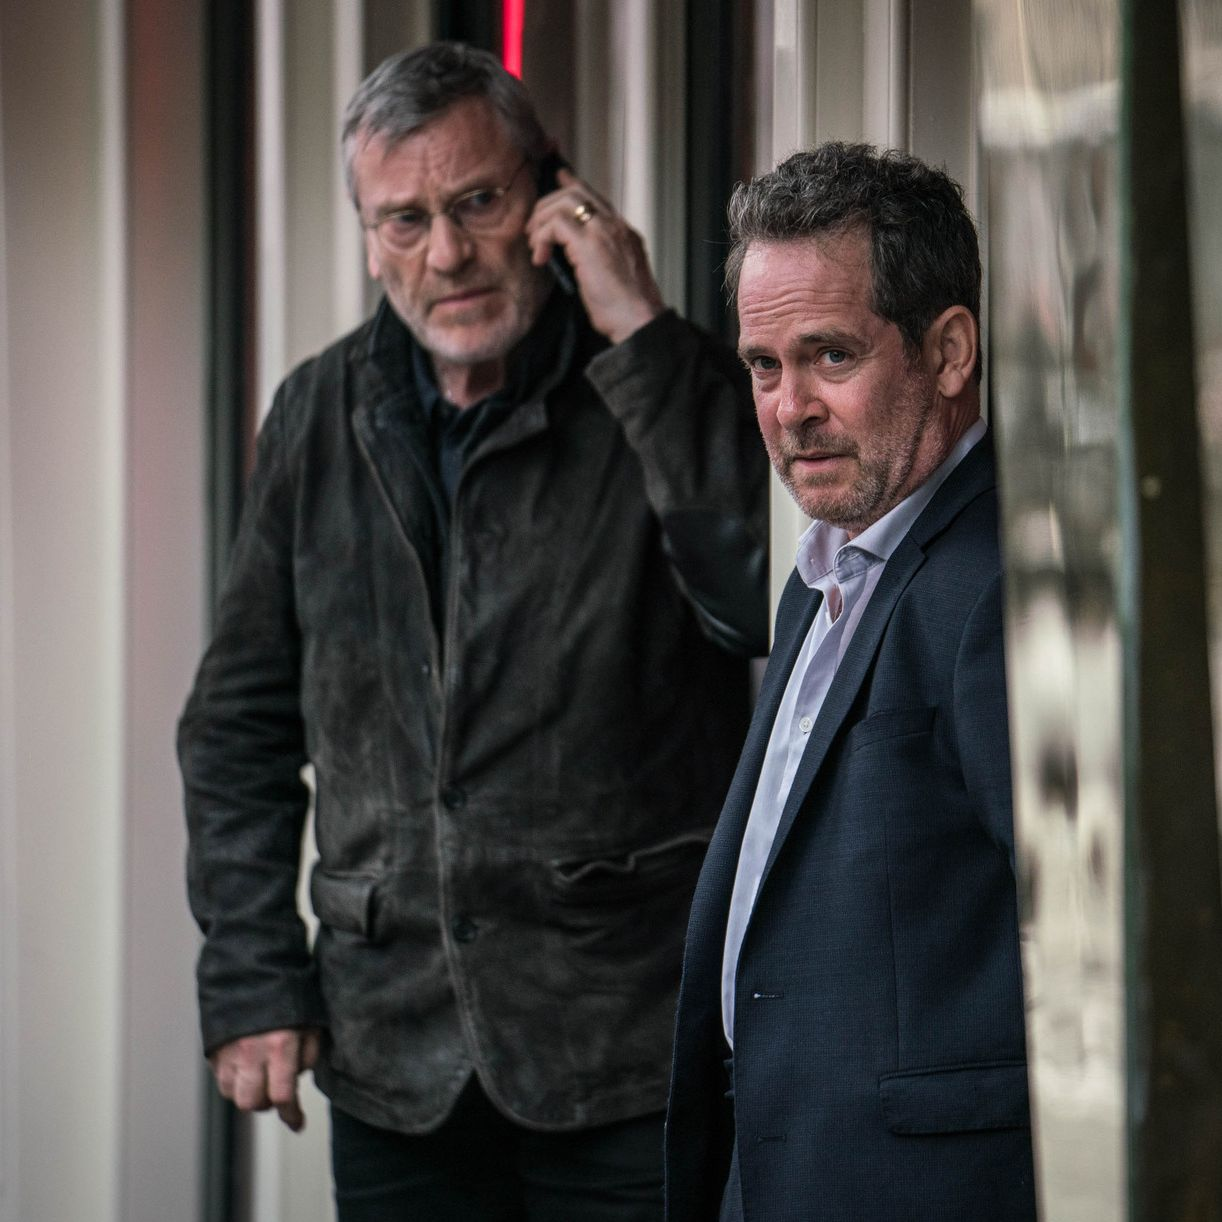 Baptiste episode 1: Who is Tom Hollander's character Edward Stratton and why is he lying?